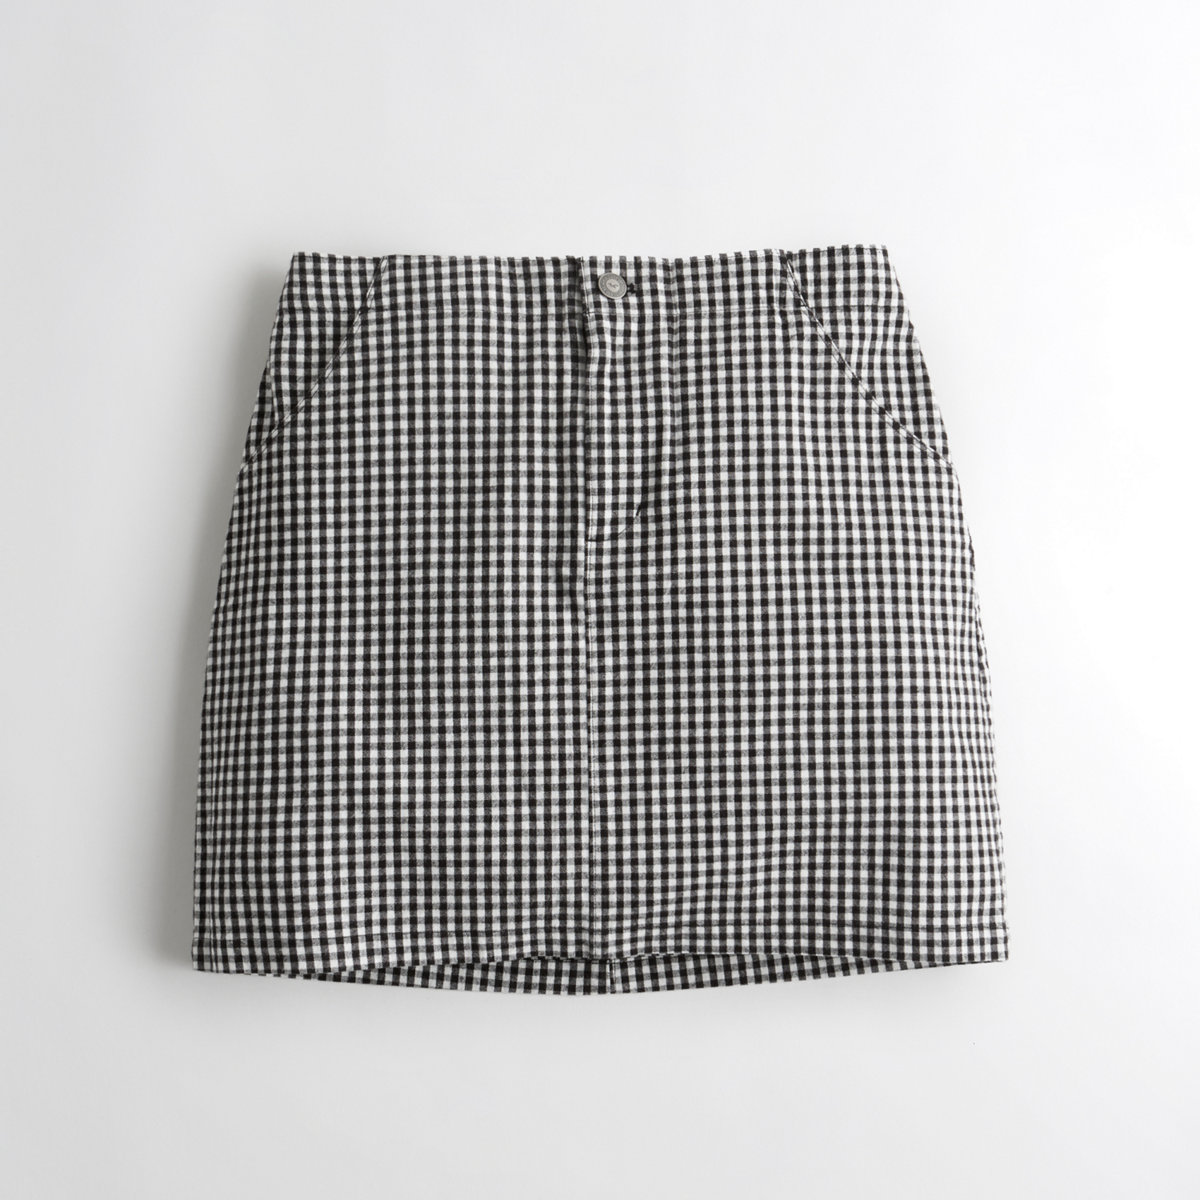 Stretch Oxford A-Line Skirt